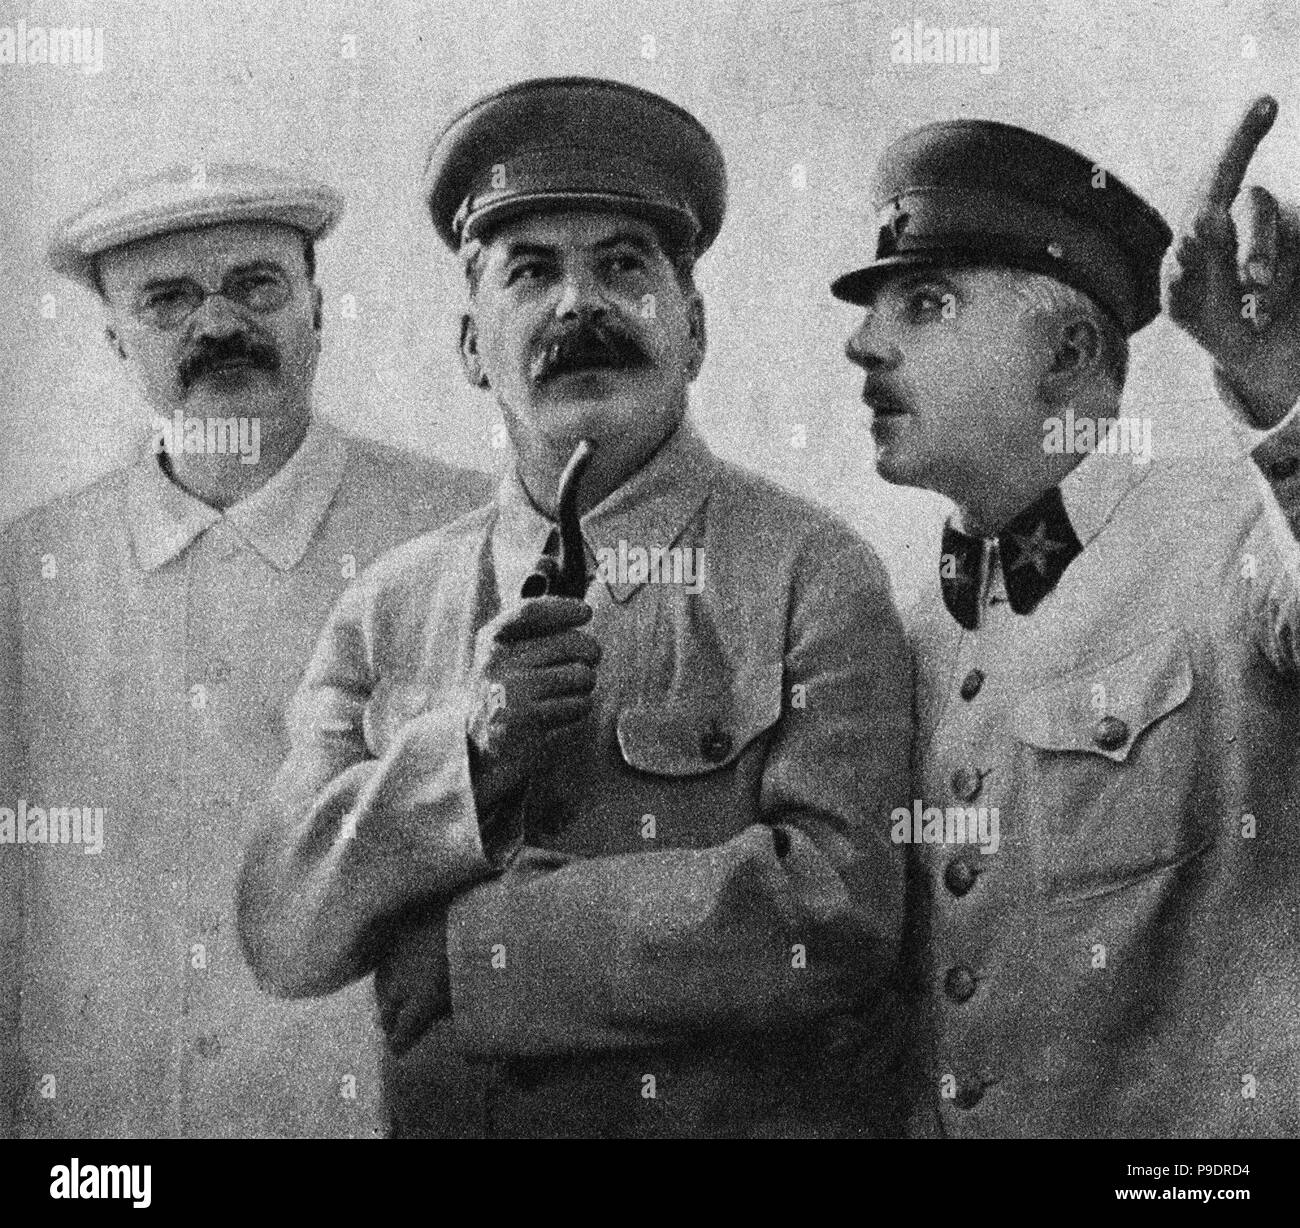 Vyacheslav Molotov, Joseph Stalin and Kliment Voroshilov on the Central Aerodrome, June 25, 1937. Museum: State Museum of the Political History of Russia, St. Petersburg. Stock Photo